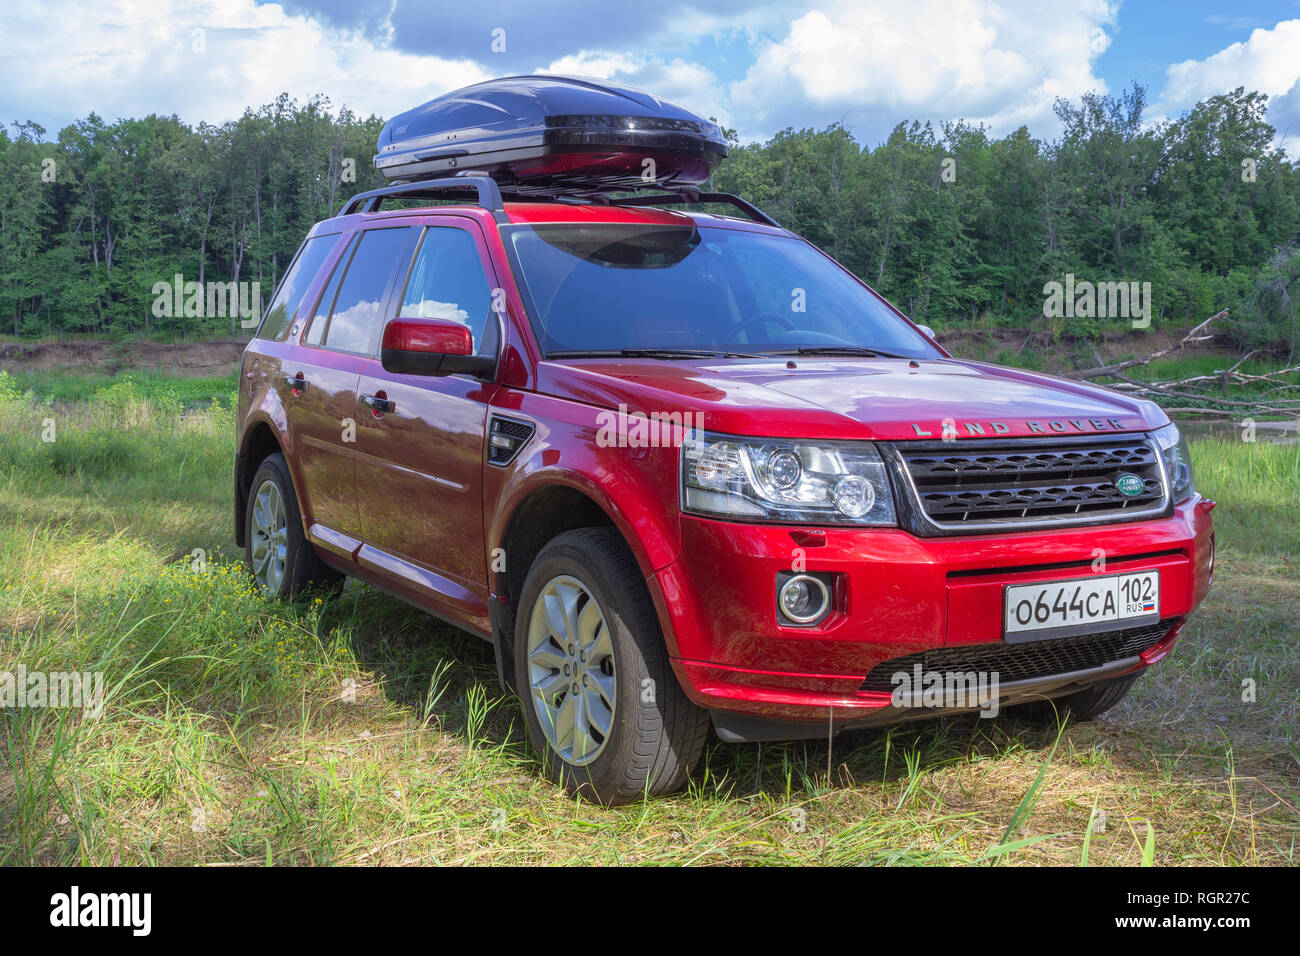 SUV LAND ROVER FREELANDER 2 and TULE autoboxing in the woods on the river bank, a car for traveling. - Stock Image